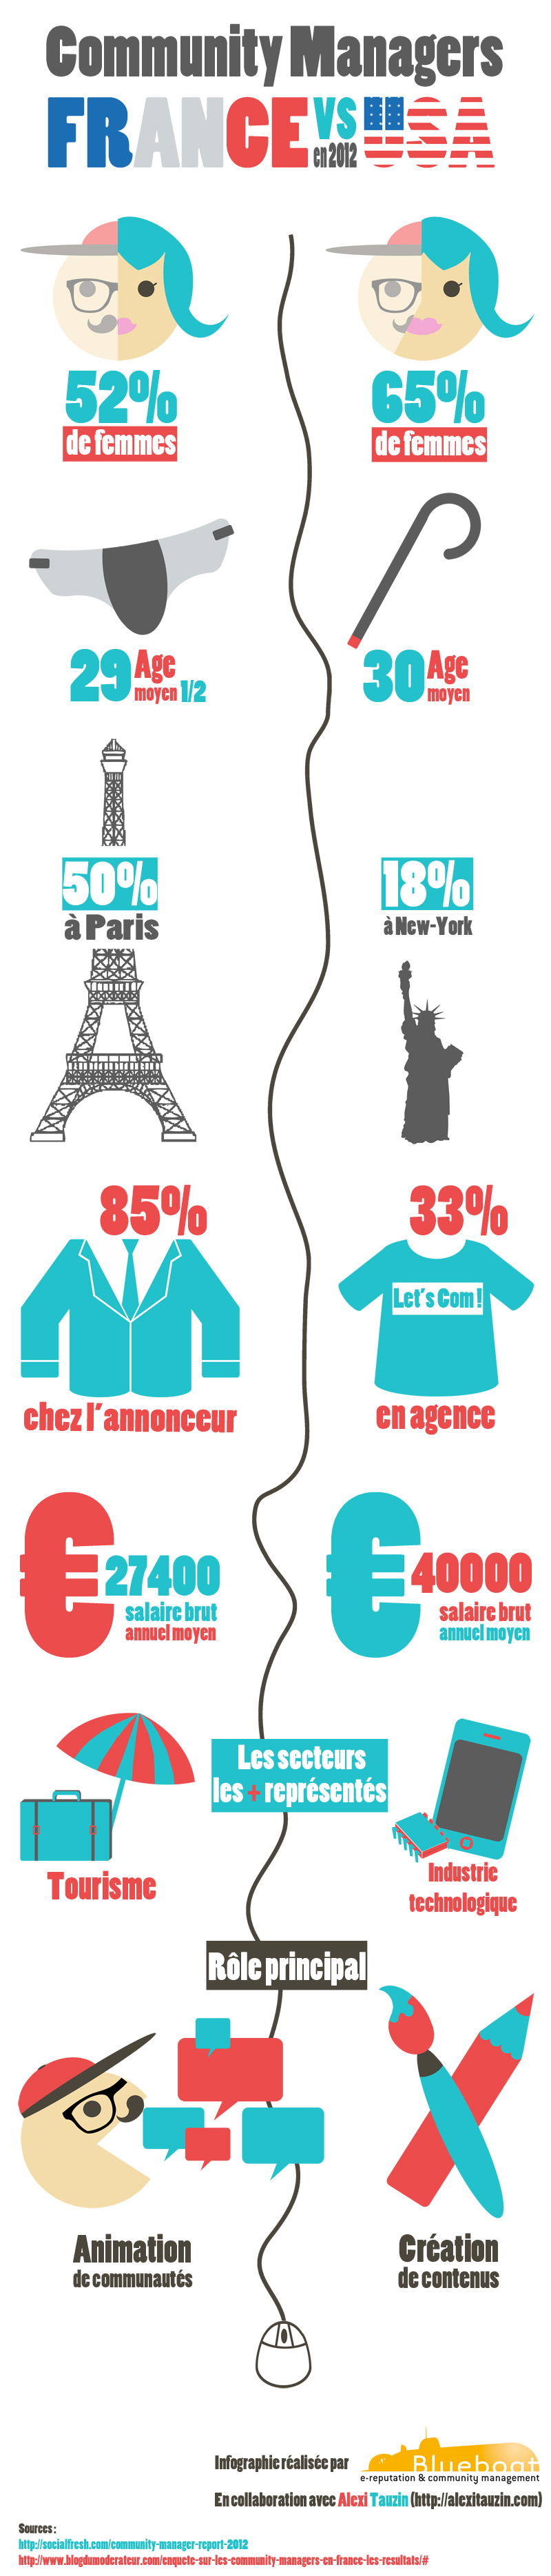 Infographie community managers France VS USA